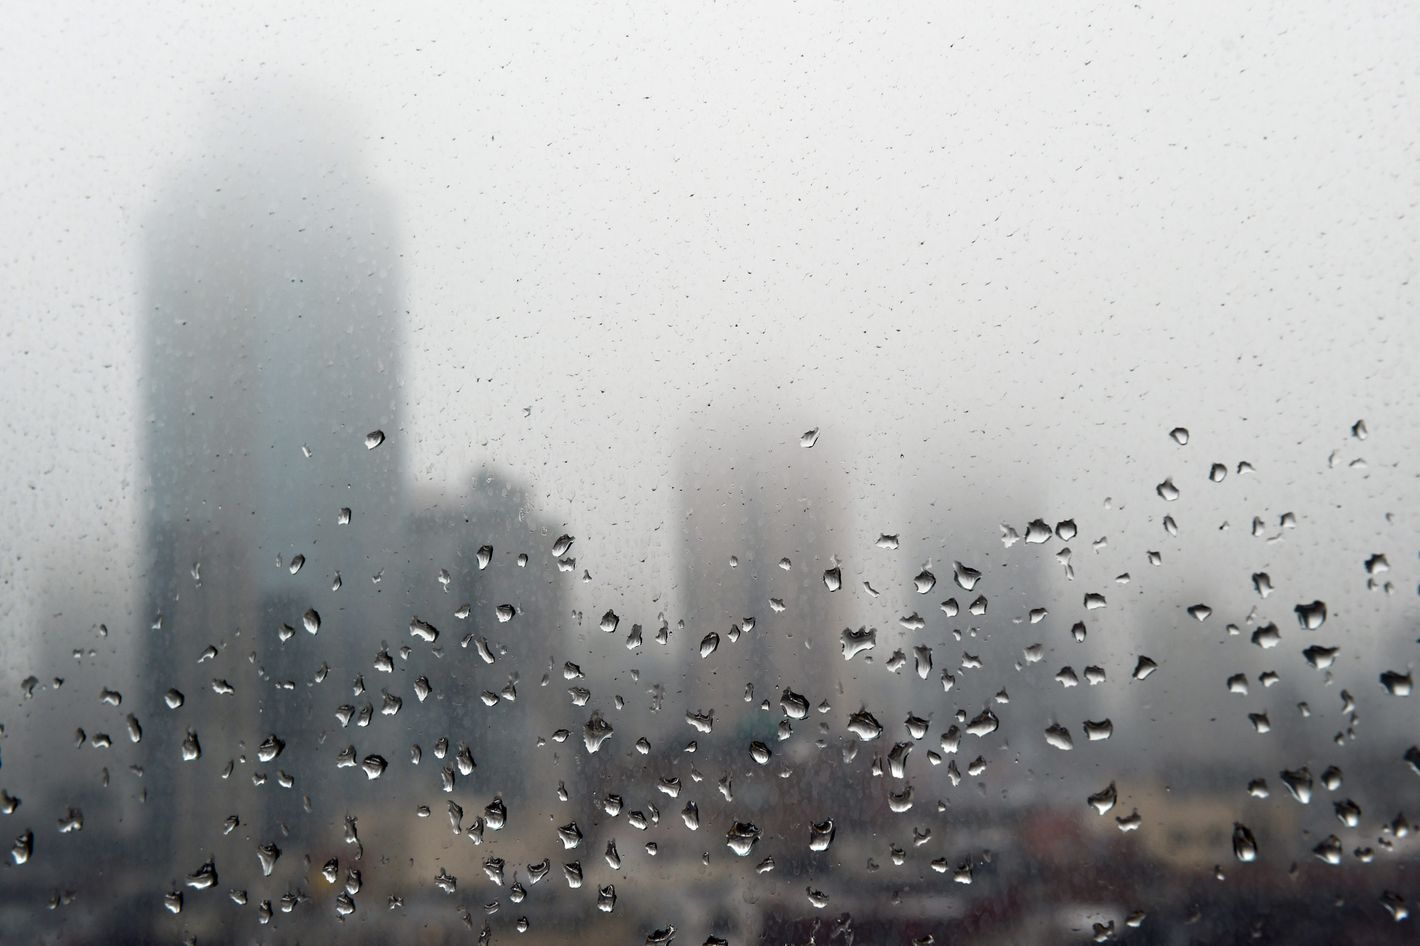 Raindrops are seen on a window as morning fog obscures the top floors of high rise buildings on the east side of Manhattan May 1, 2014 in New York.